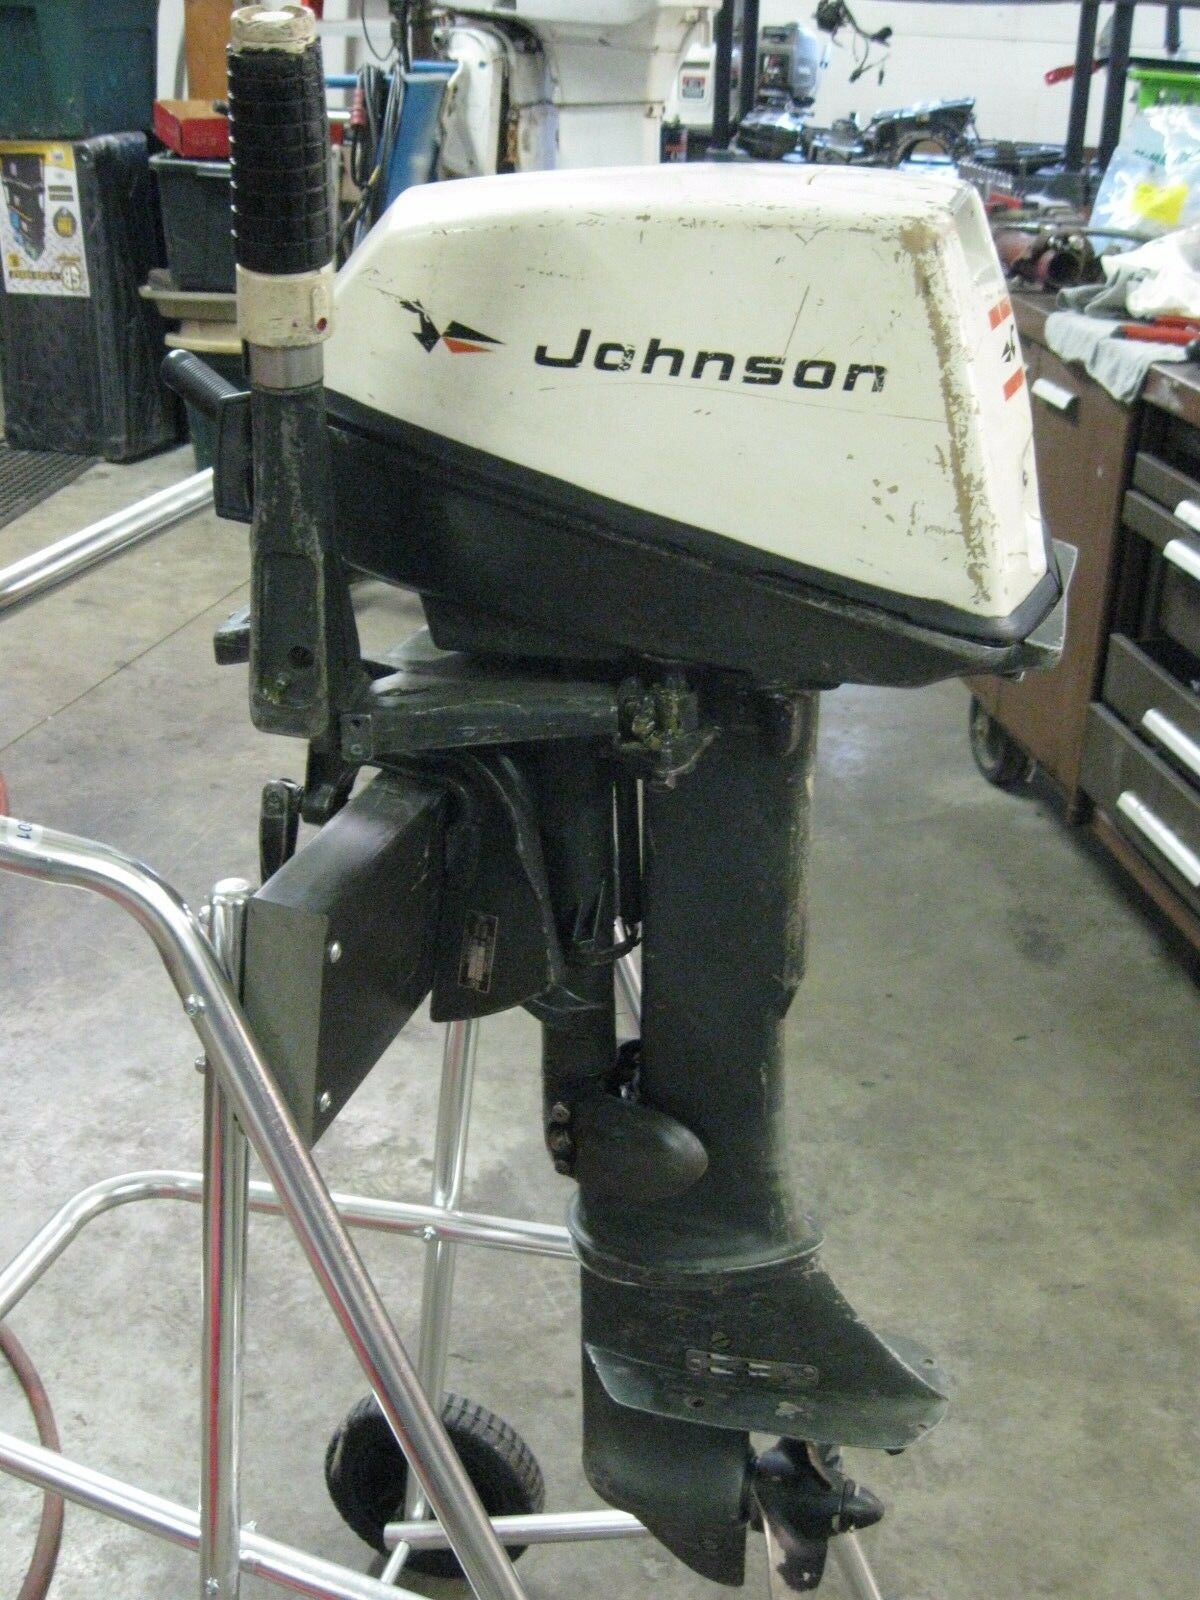 1971 6 hp Johnson Outboard Motor 1 of 6 See More